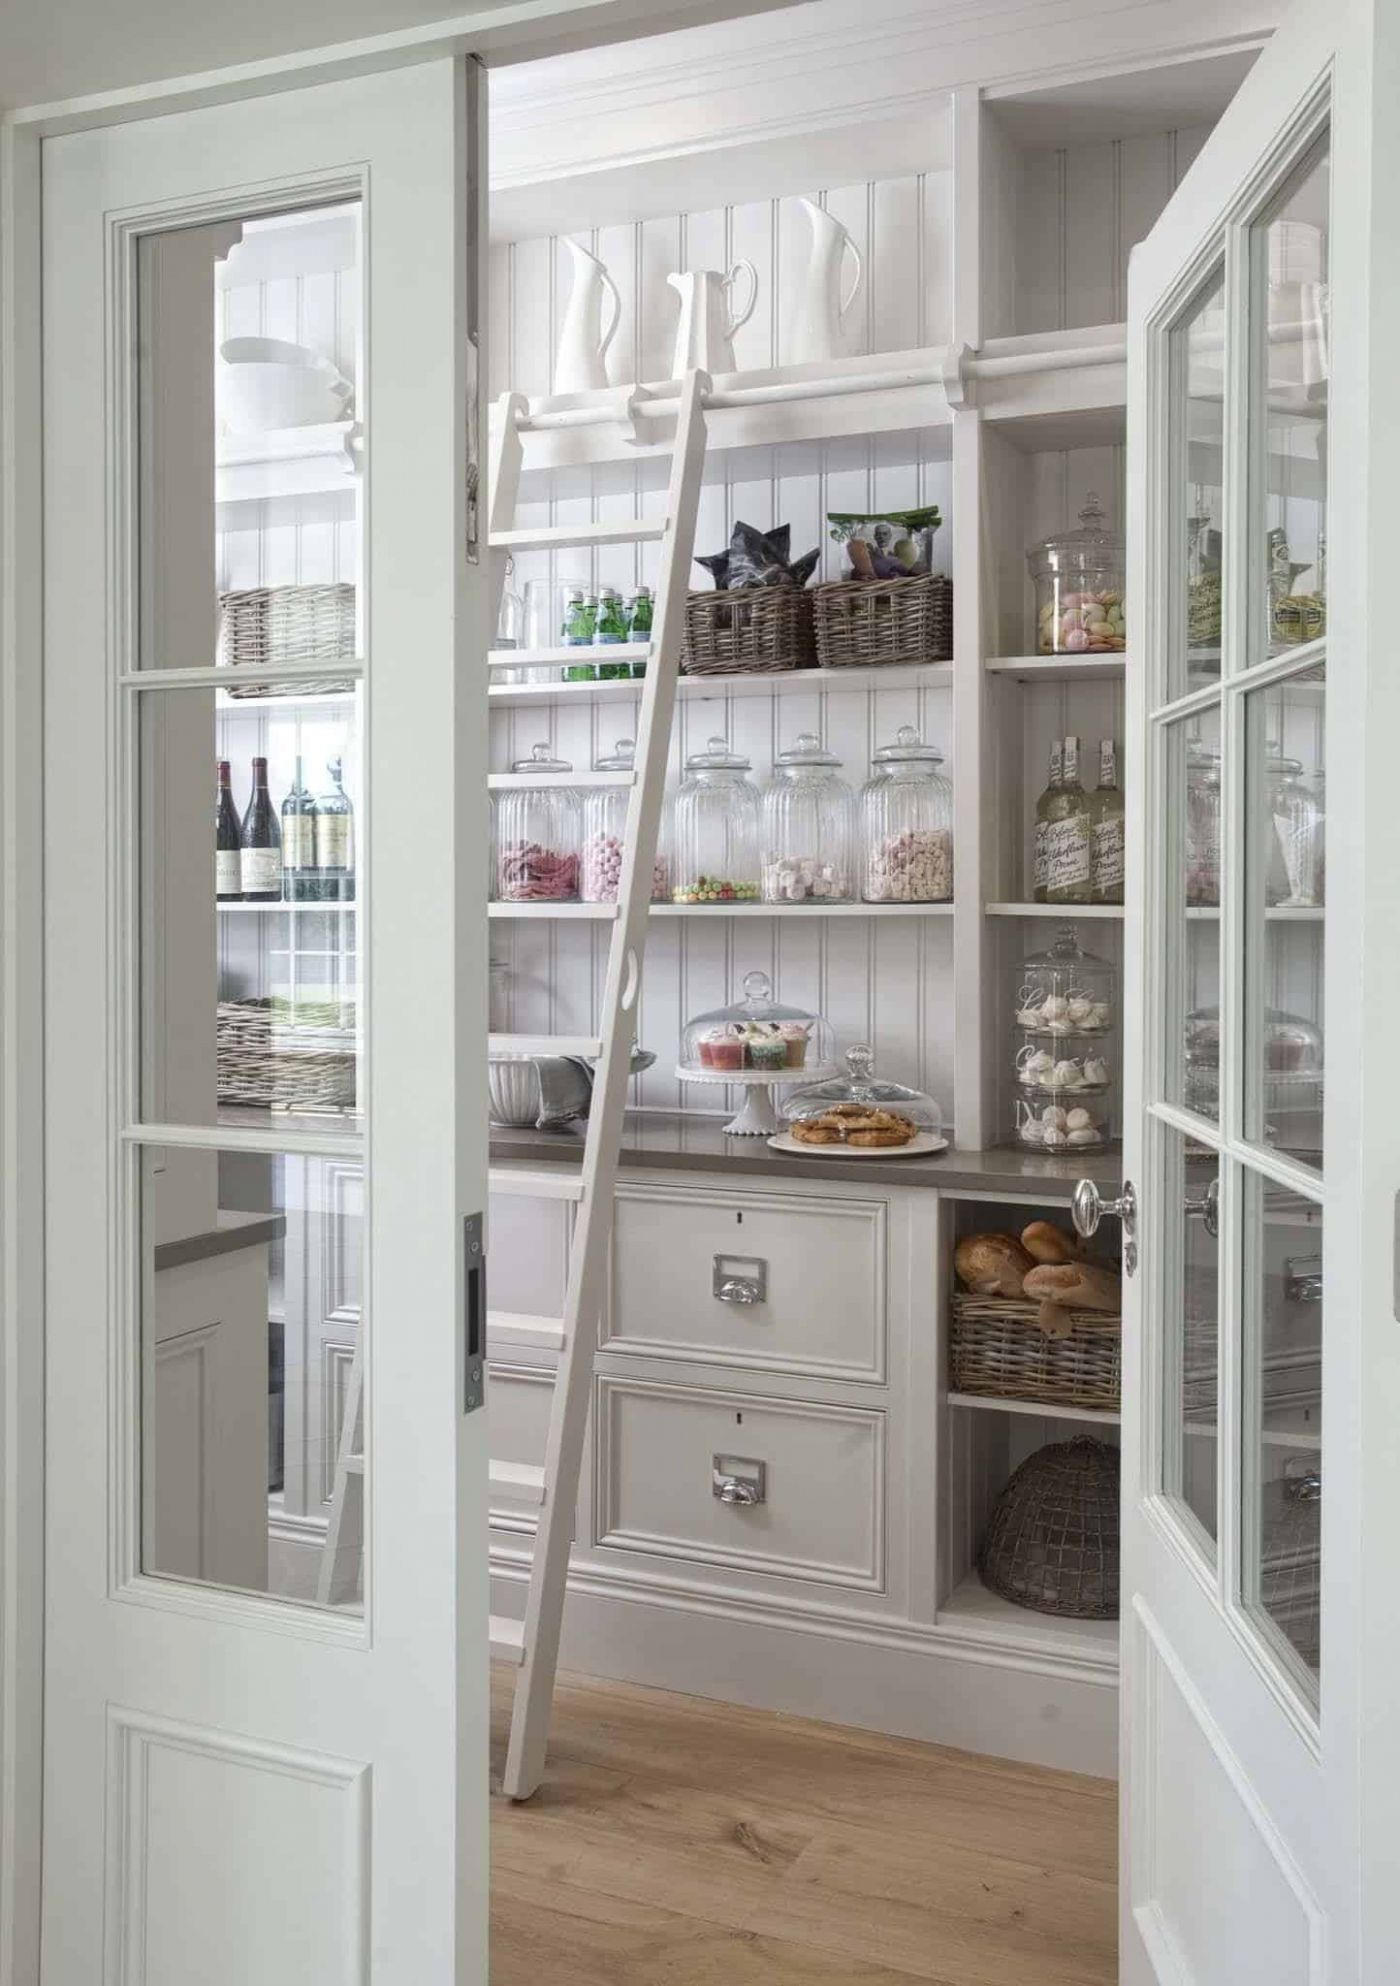 11 Clever ideas to help organize your kitchen pantry - closet ladder ideas